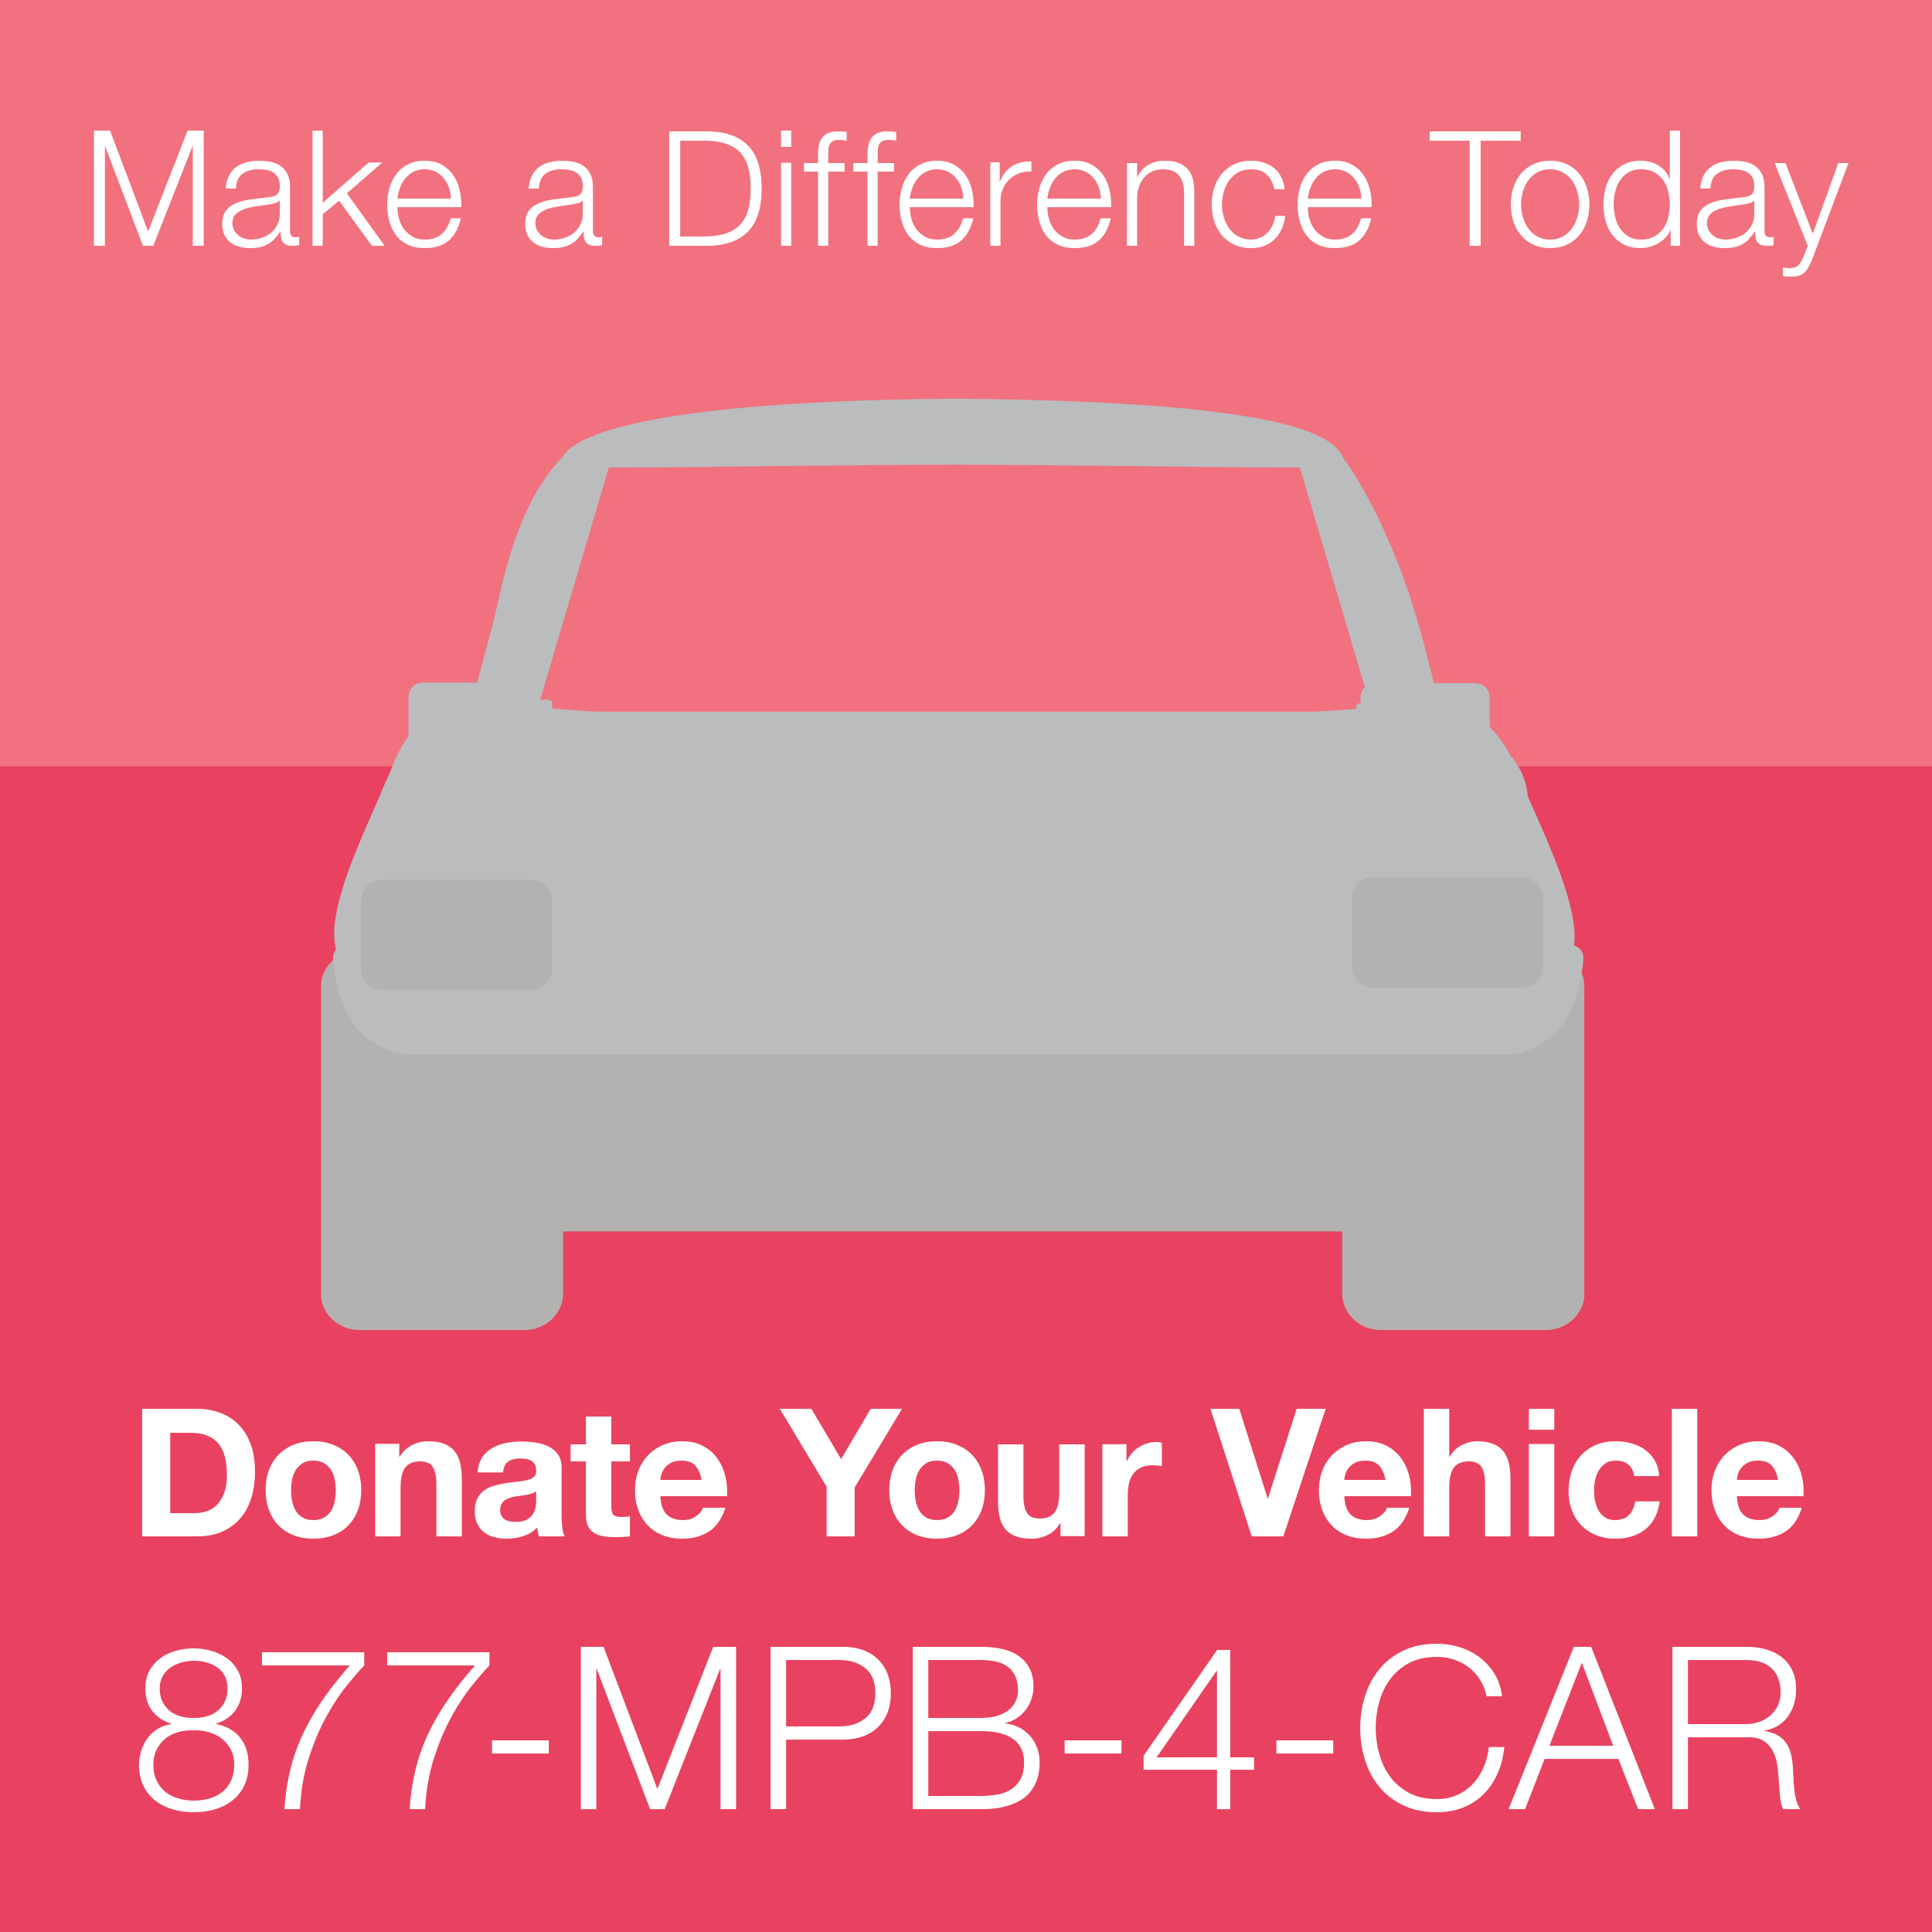 Support MPB by donating your old vehicle on Giving Tuesday, November 28!